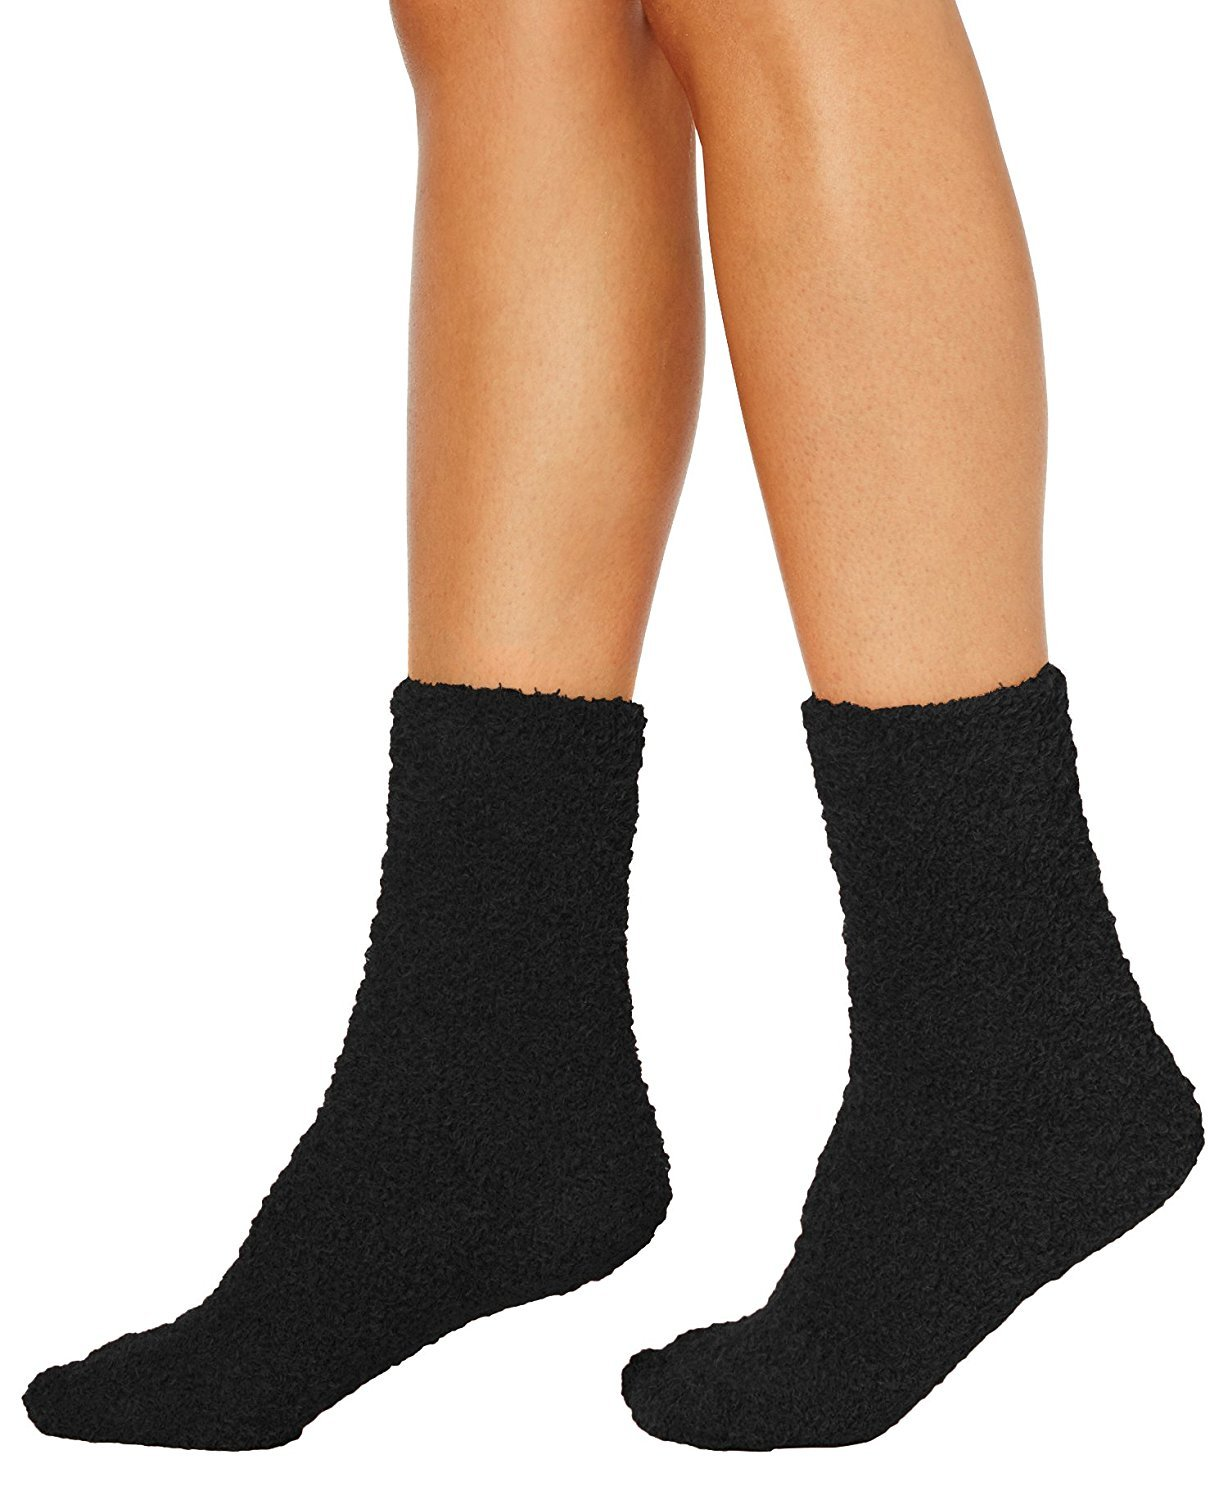 Charter Club Women/'s Heather Gray Fuzzy Cozy Super Soft Socks NEW w Tags